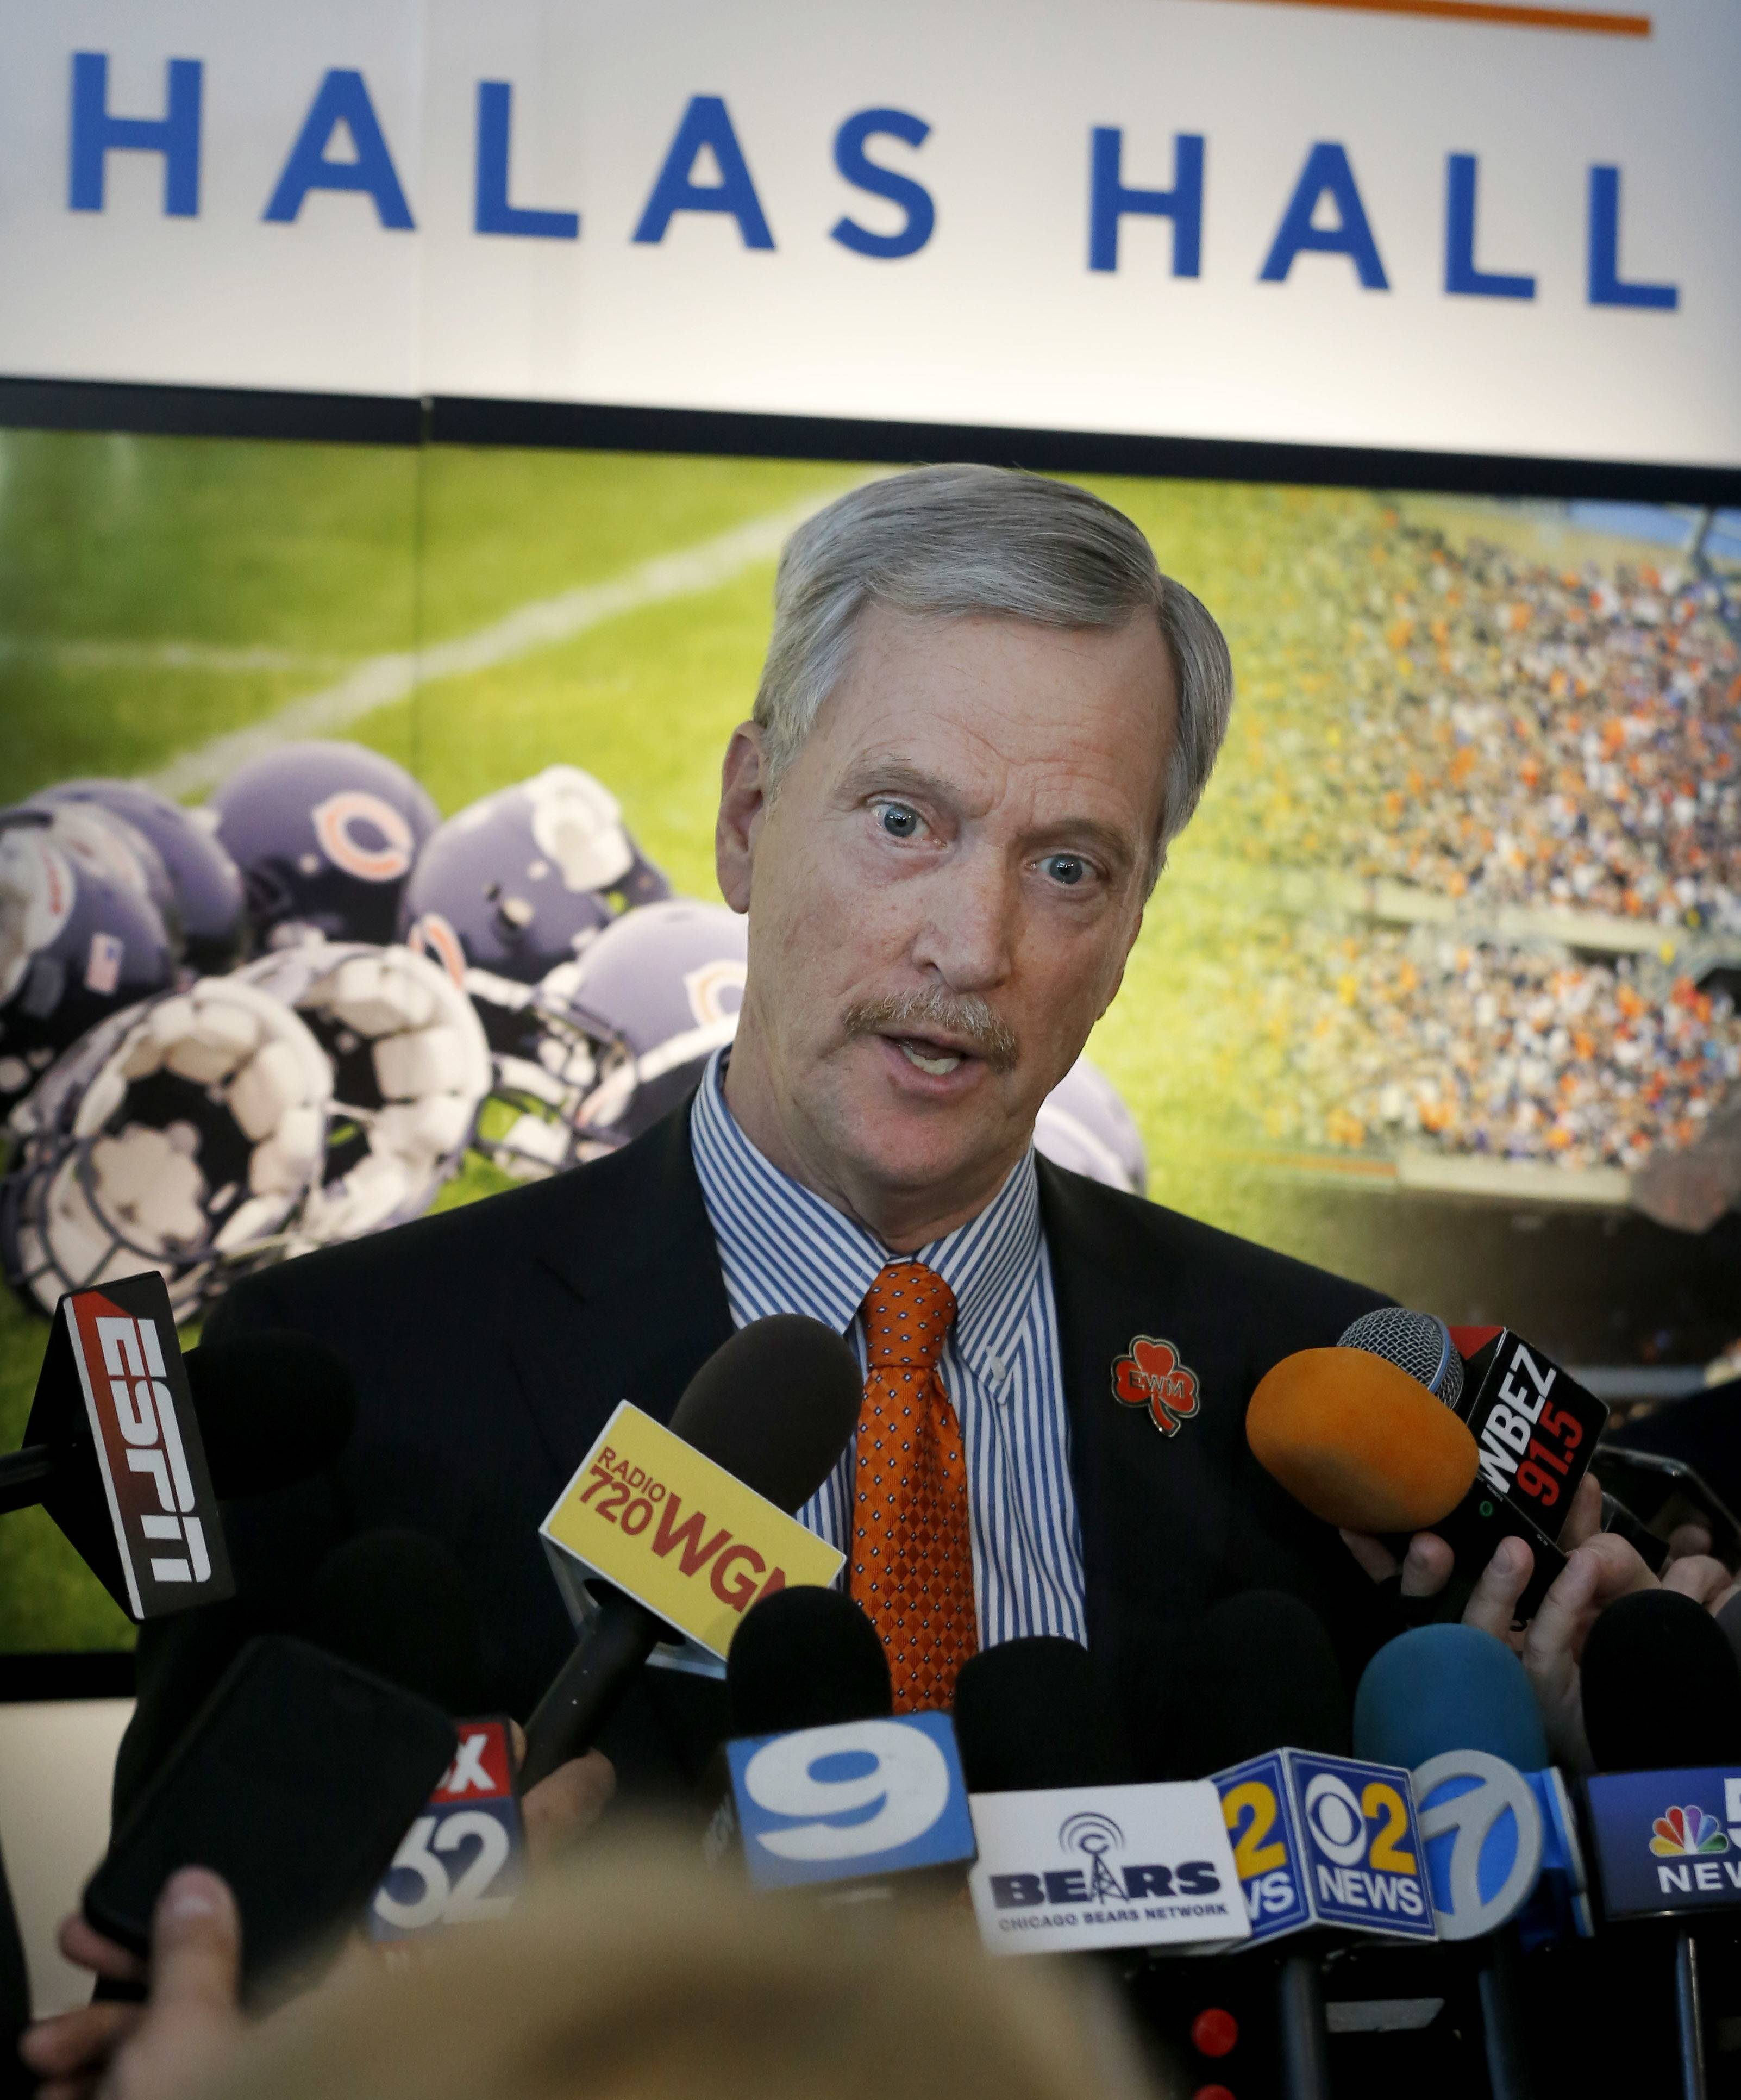 Chicago Bears chairman George H. McCaskey talks to reporters after an end of season NFL football news conference with coach John Fox and general manager Ryan Pace Wednesday, Jan. 4, 2017, in Lake Forest, Ill. (AP Photo/Charles Rex Arbogast)